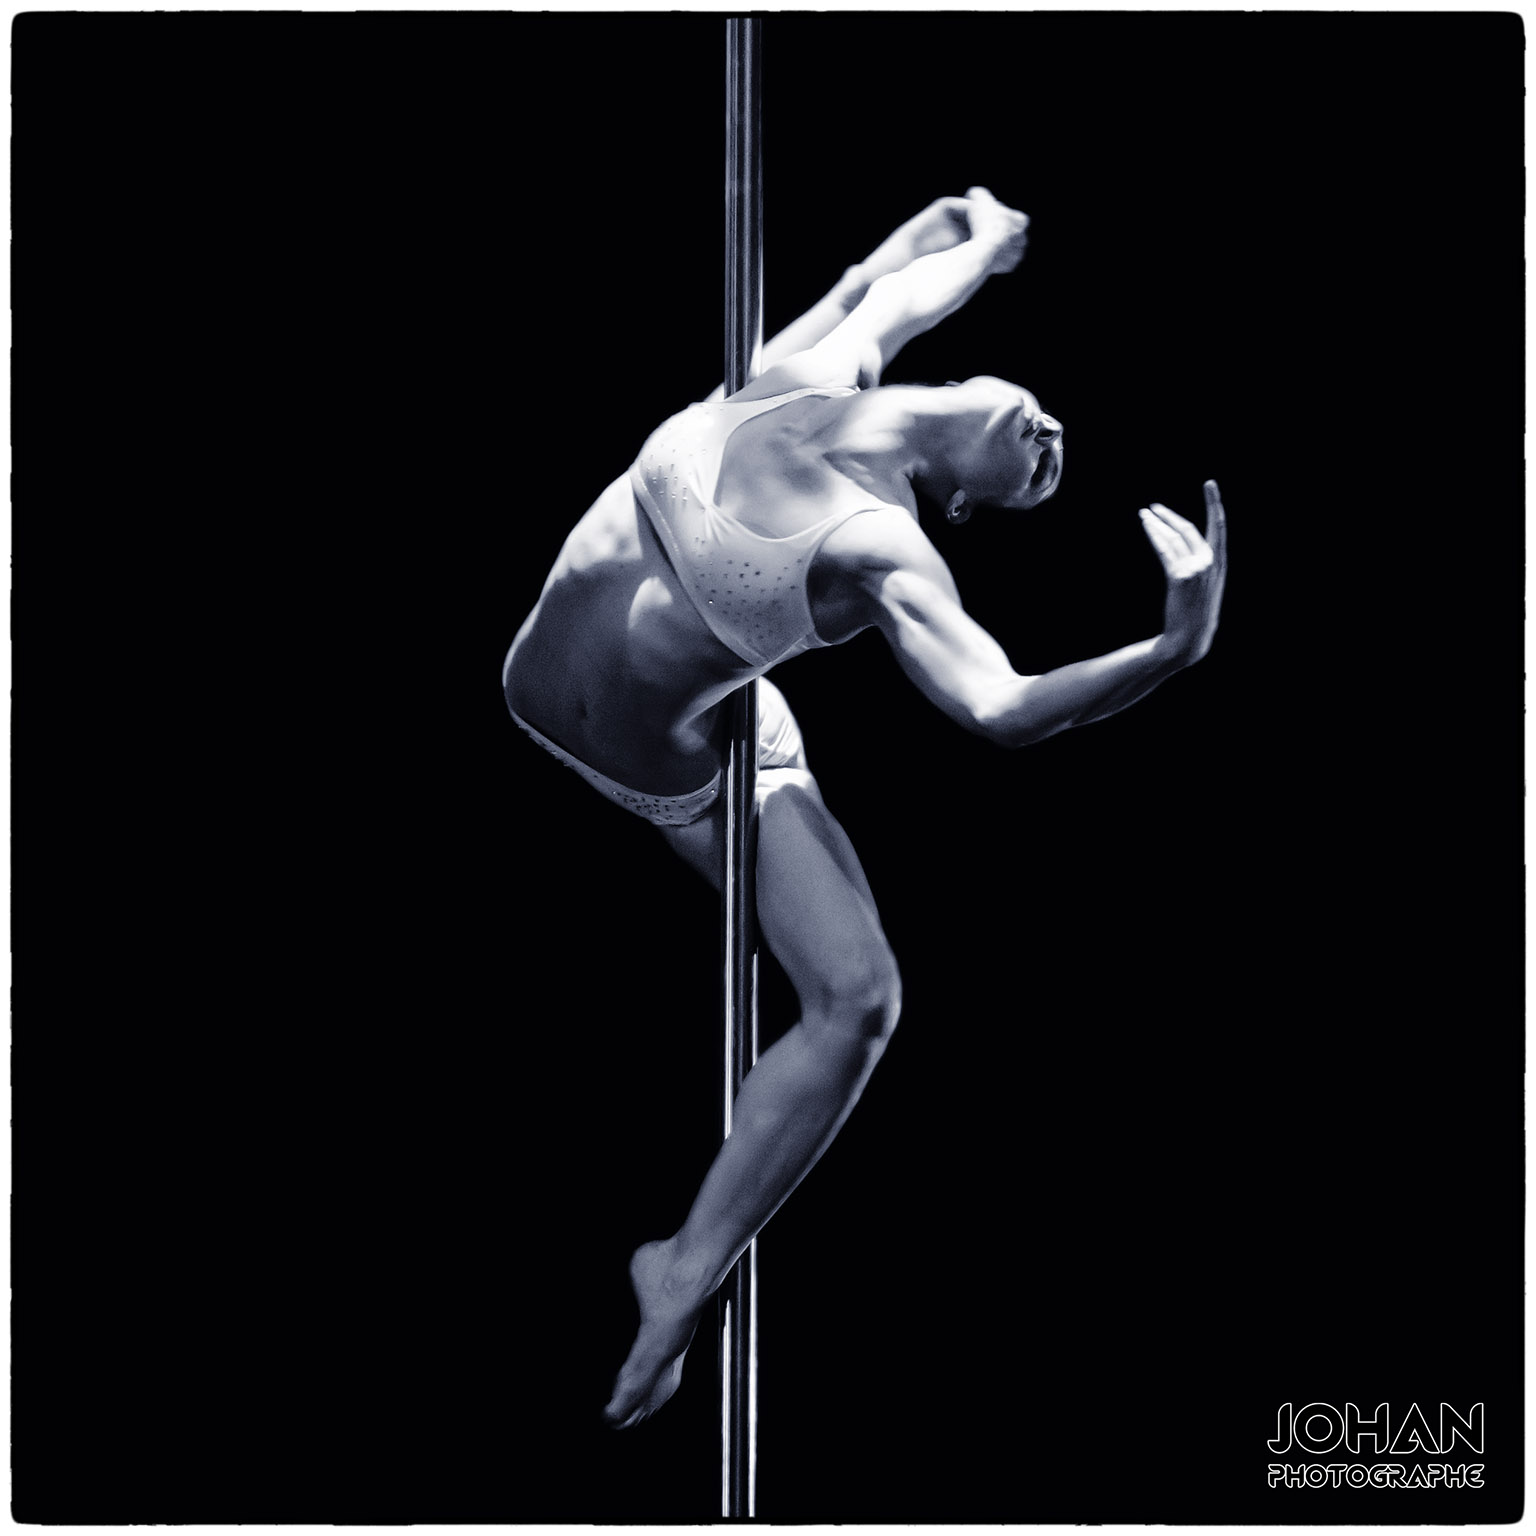 pole dance b ziers johan photographe le blog. Black Bedroom Furniture Sets. Home Design Ideas